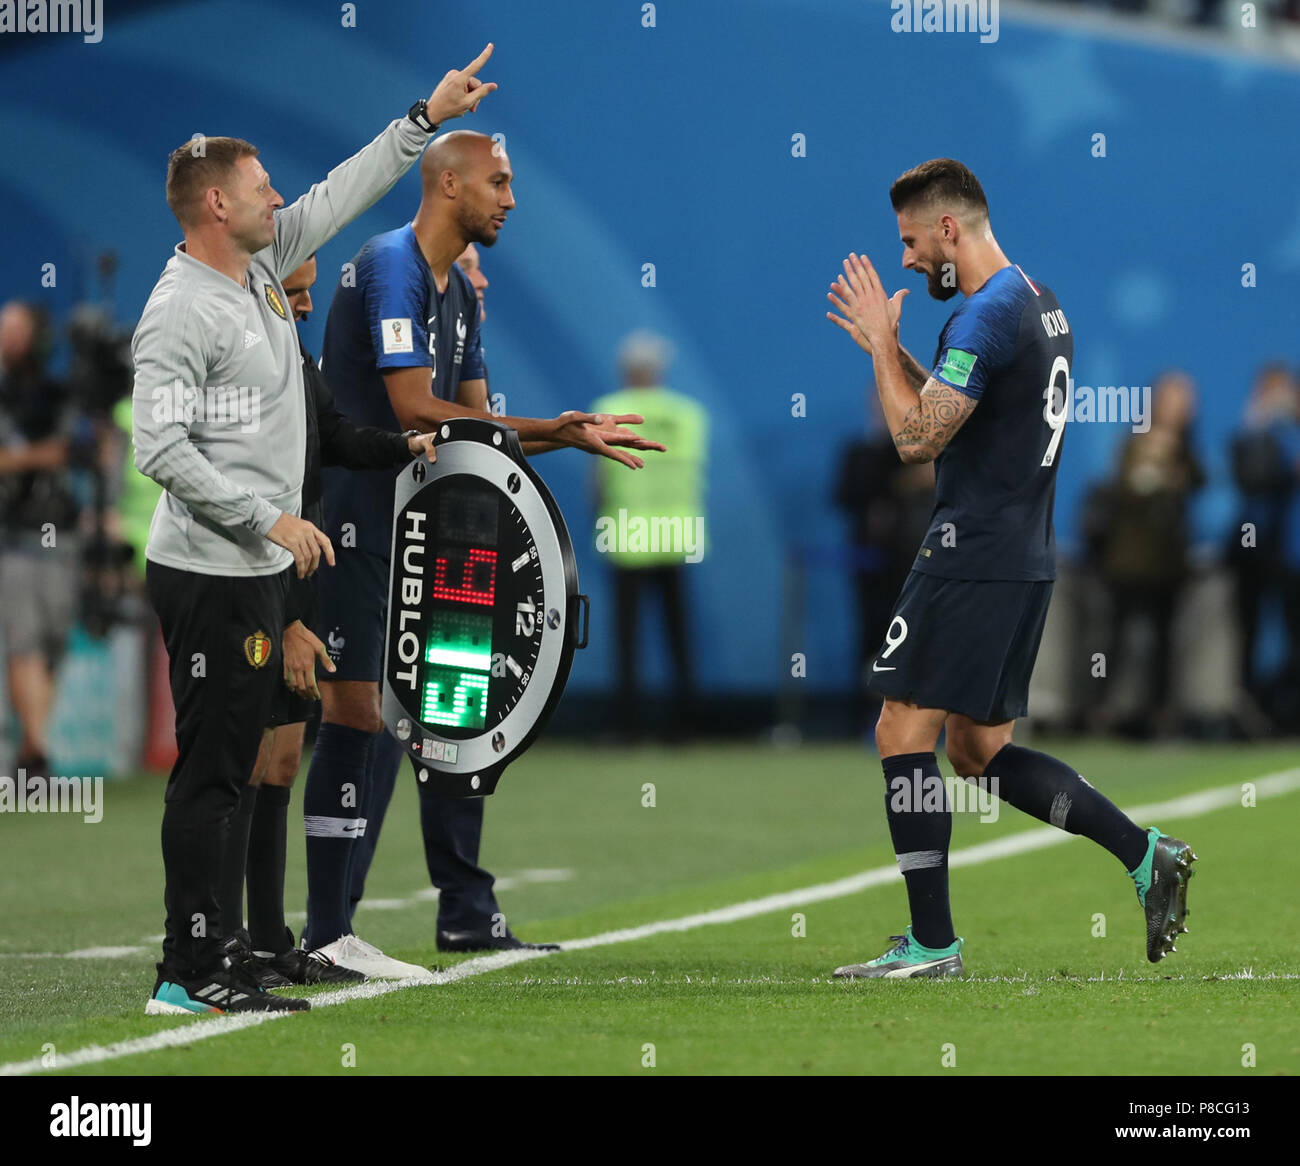 Saint Petersburg, Russia. 10th July, 2018. France's Steven Nzonzi (C) substitutes Olivier Giroud (R) during the 2018 FIFA World Cup semi-final match between France and Belgium in Saint Petersburg, Russia, July 10, 2018. Credit: Fei Maohua/Xinhua/Alamy Live News - Stock Image